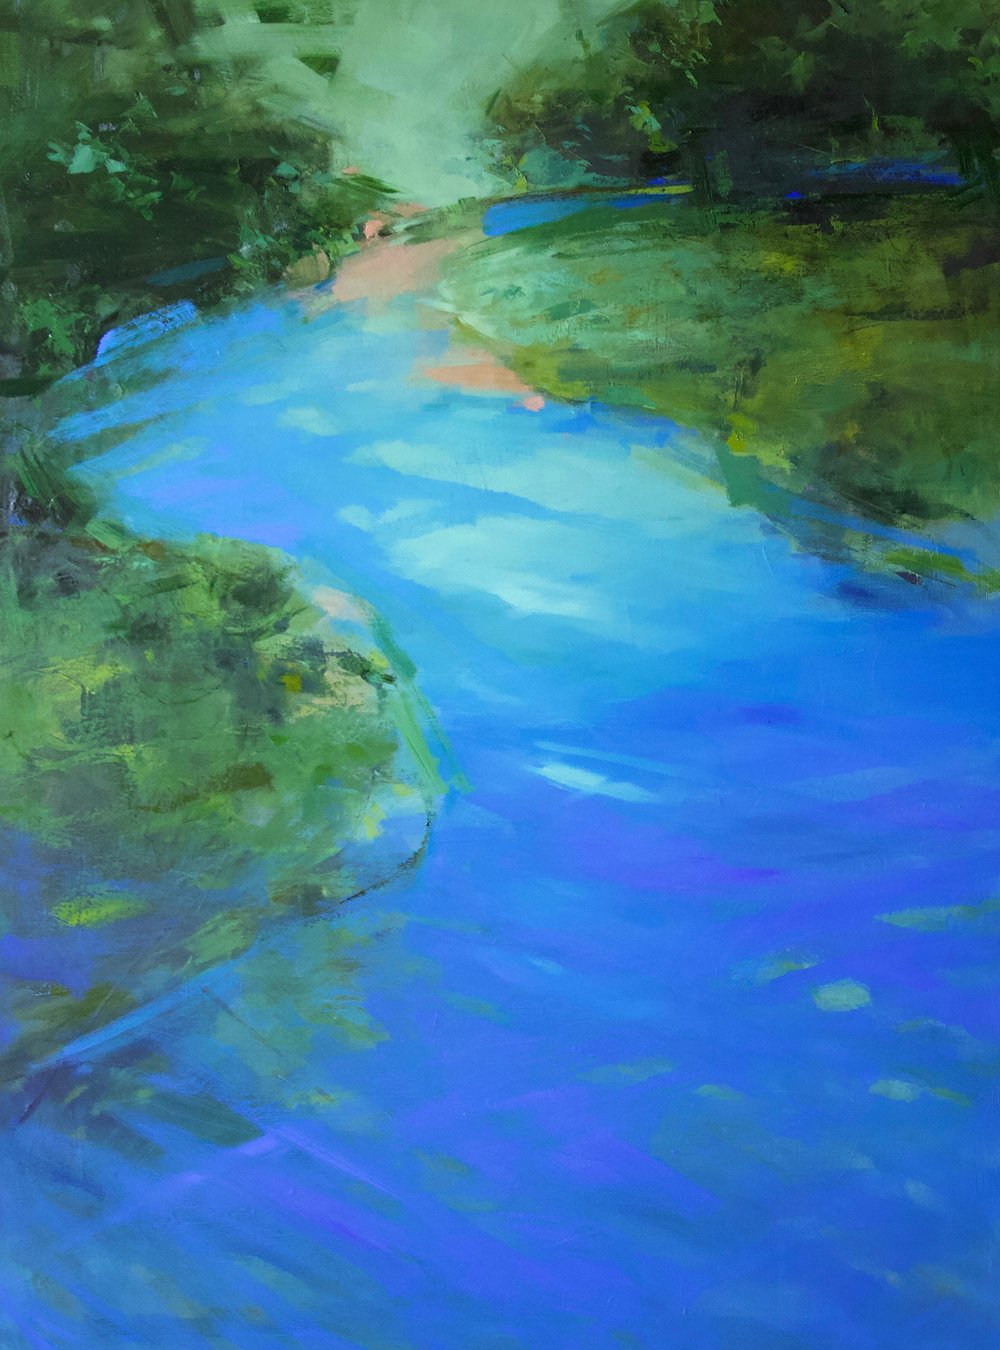 """Blue River"" by Ewa Perz, Oil on canvas, 48x36in, 2018, $2900"